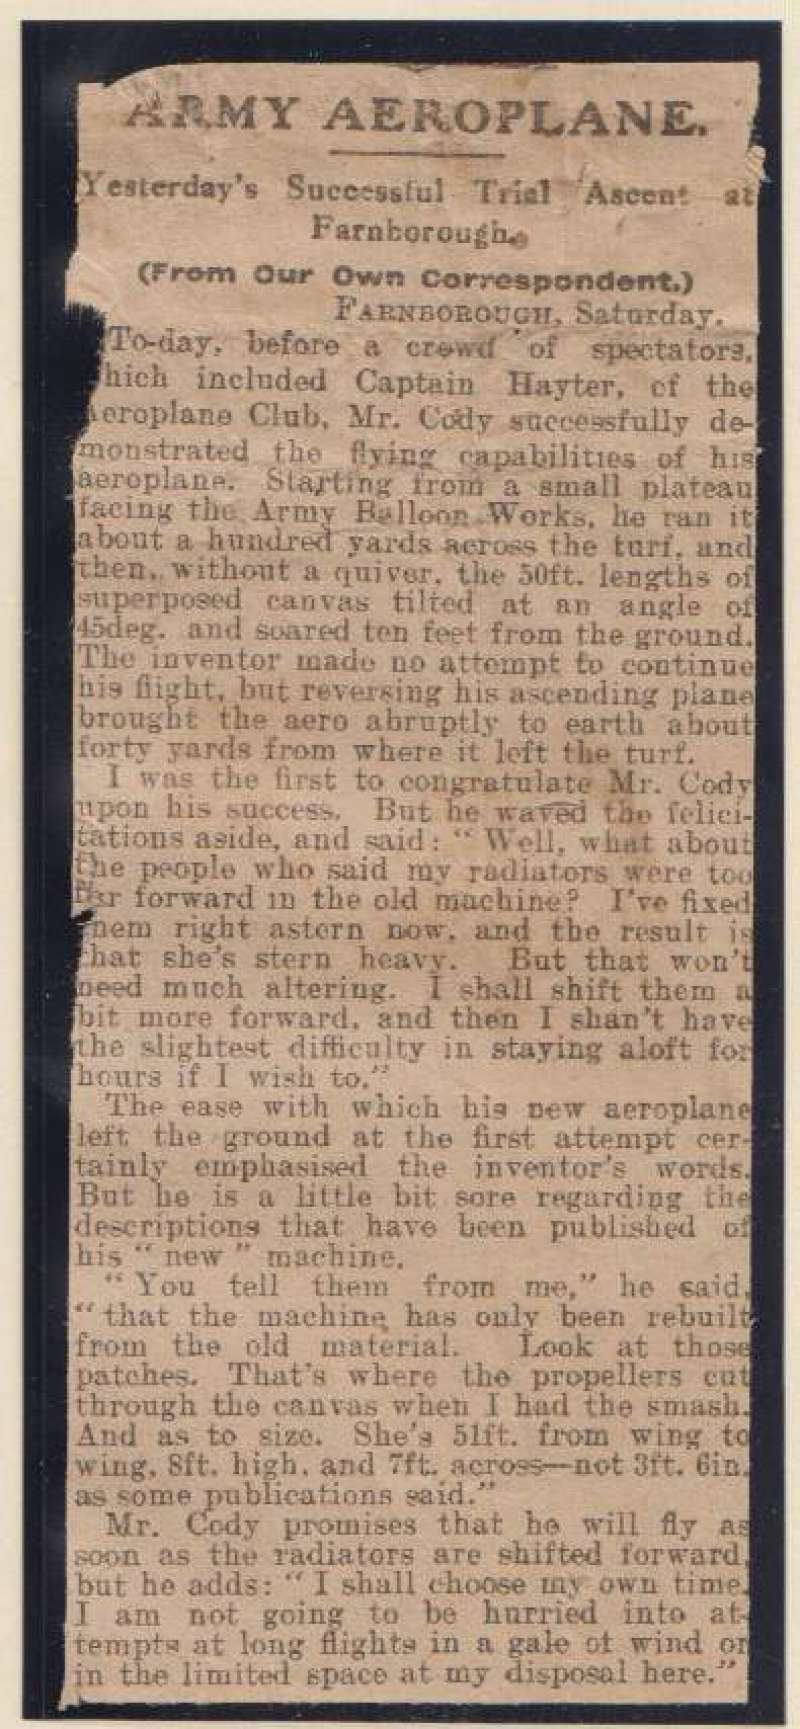 (Ephemera) Samuel Cody's successful trial ascent at Farnborough, original newspaper cutting from the Weekly Dispatch dated January 3 1909.